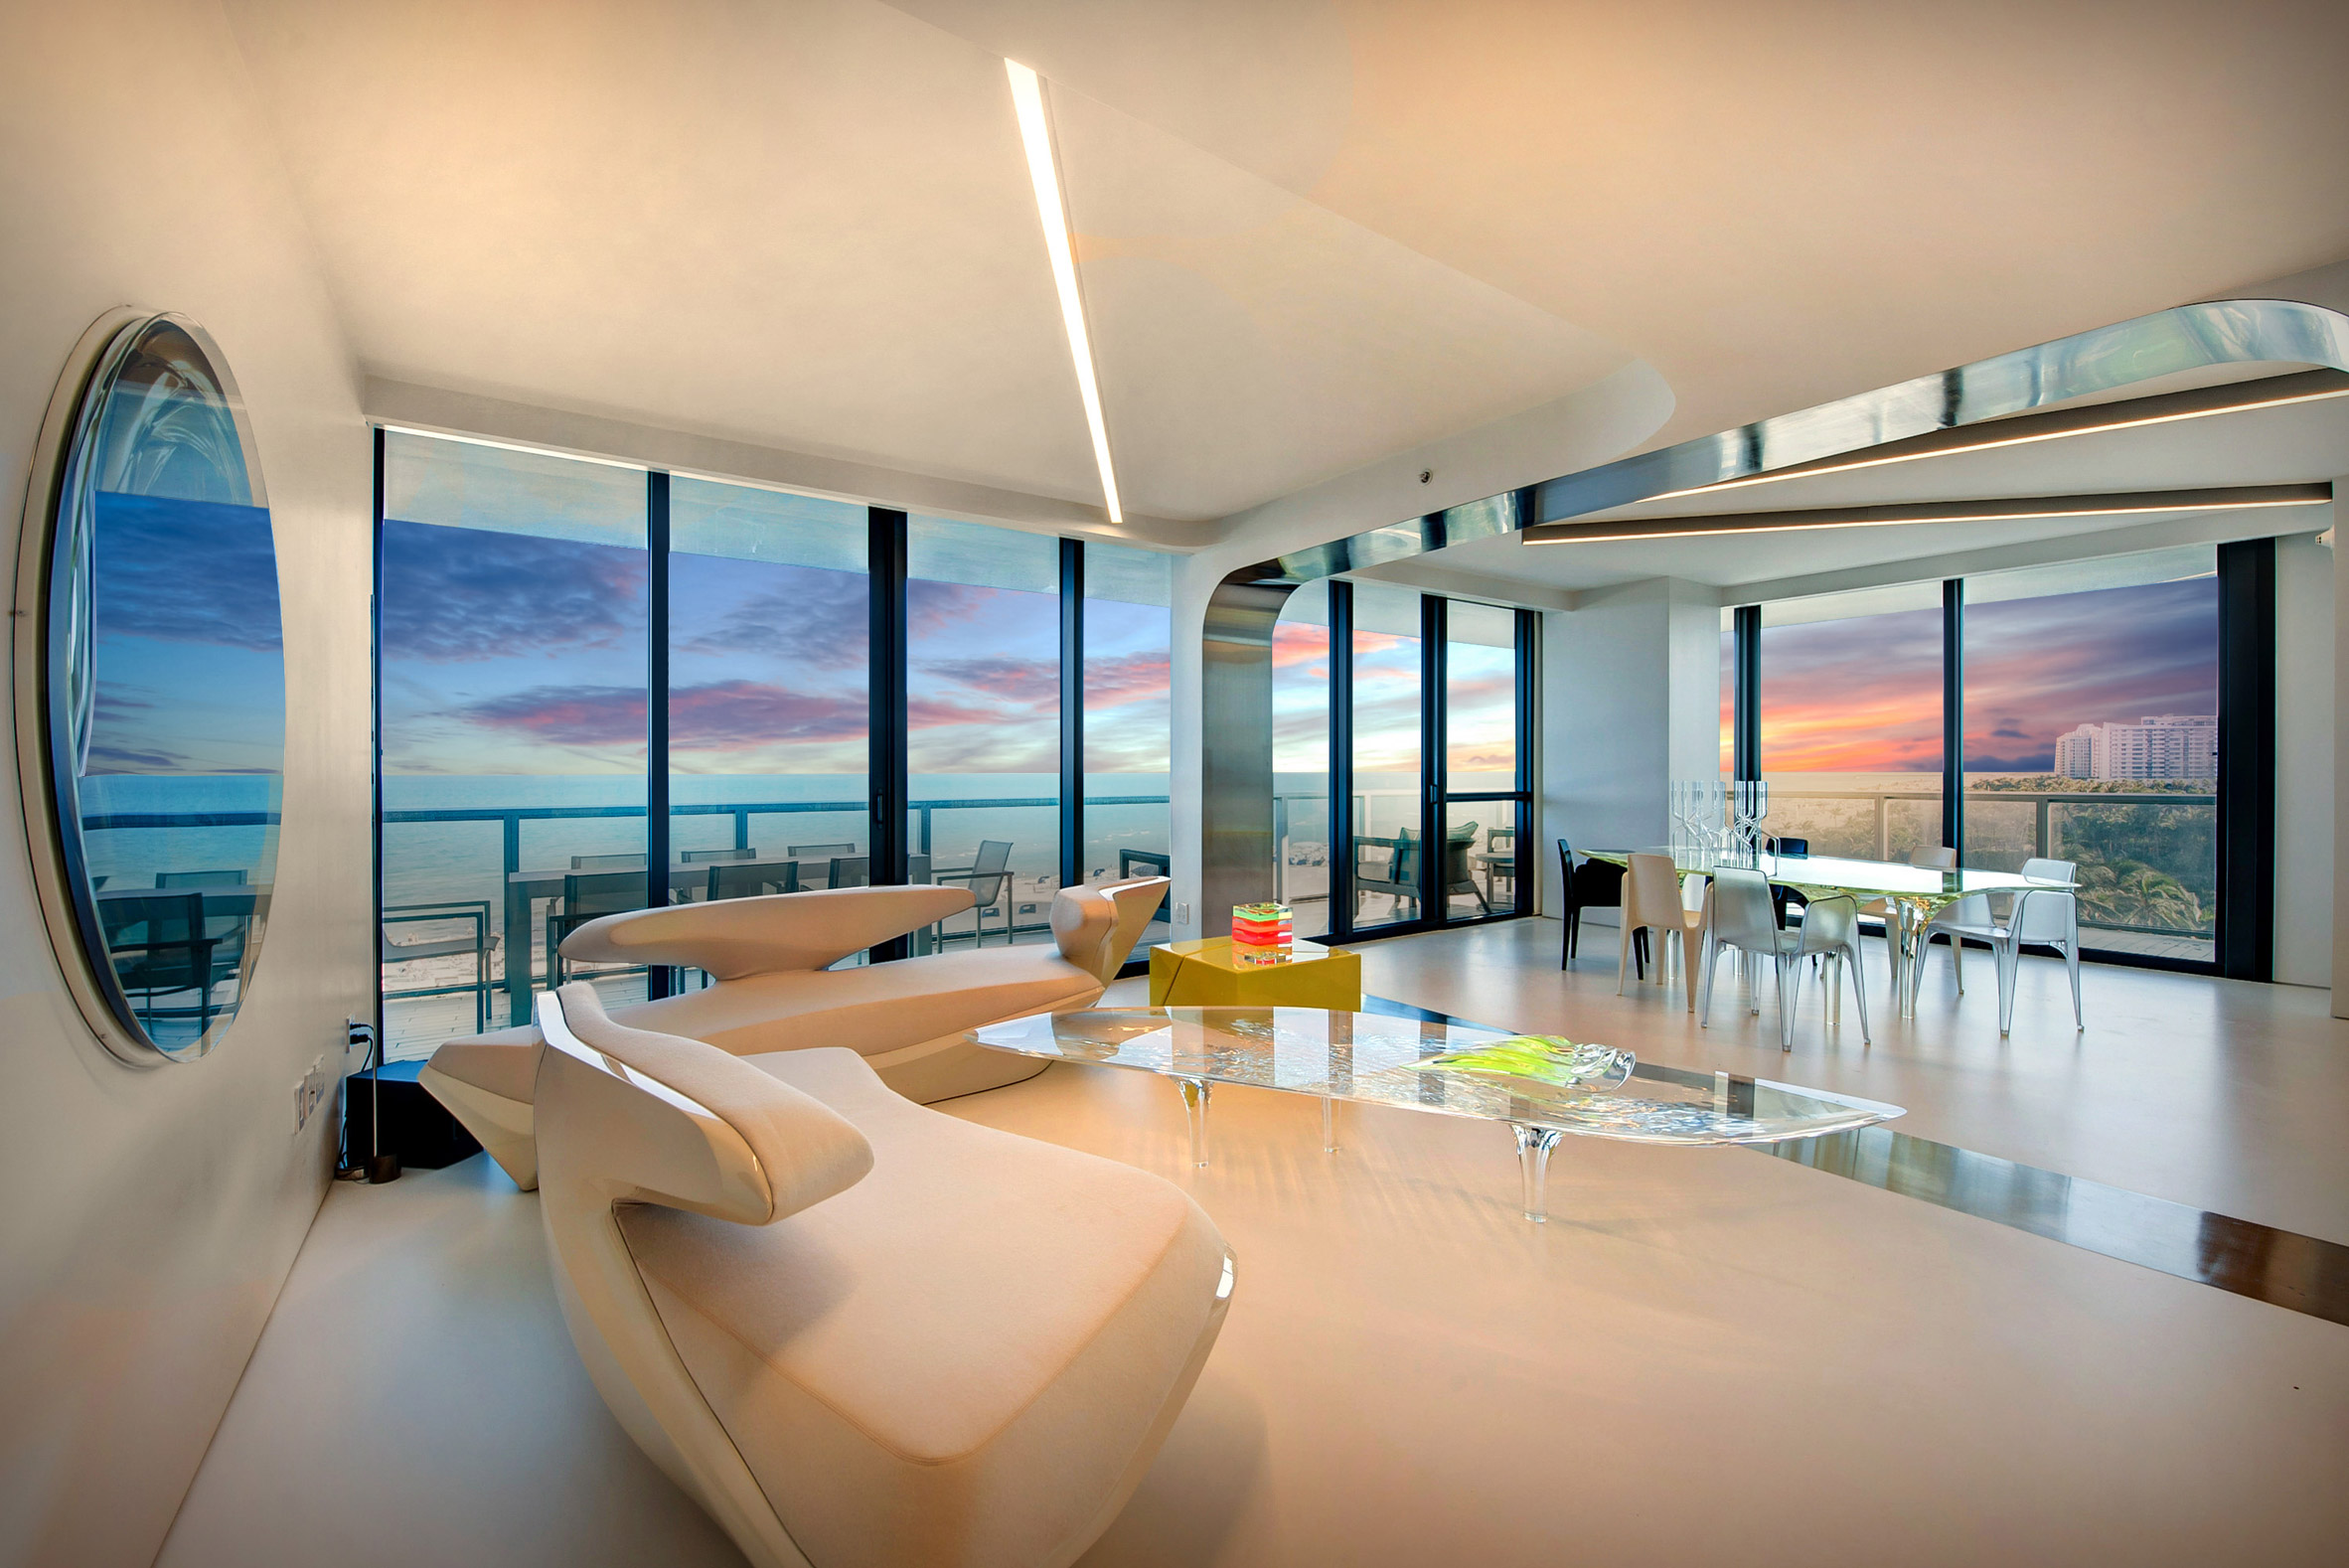 design, luxury, penthouse, american, miami, modern, zaha hadi, beach, architect, villa, billionaire, house, usa, livingroom, twilight